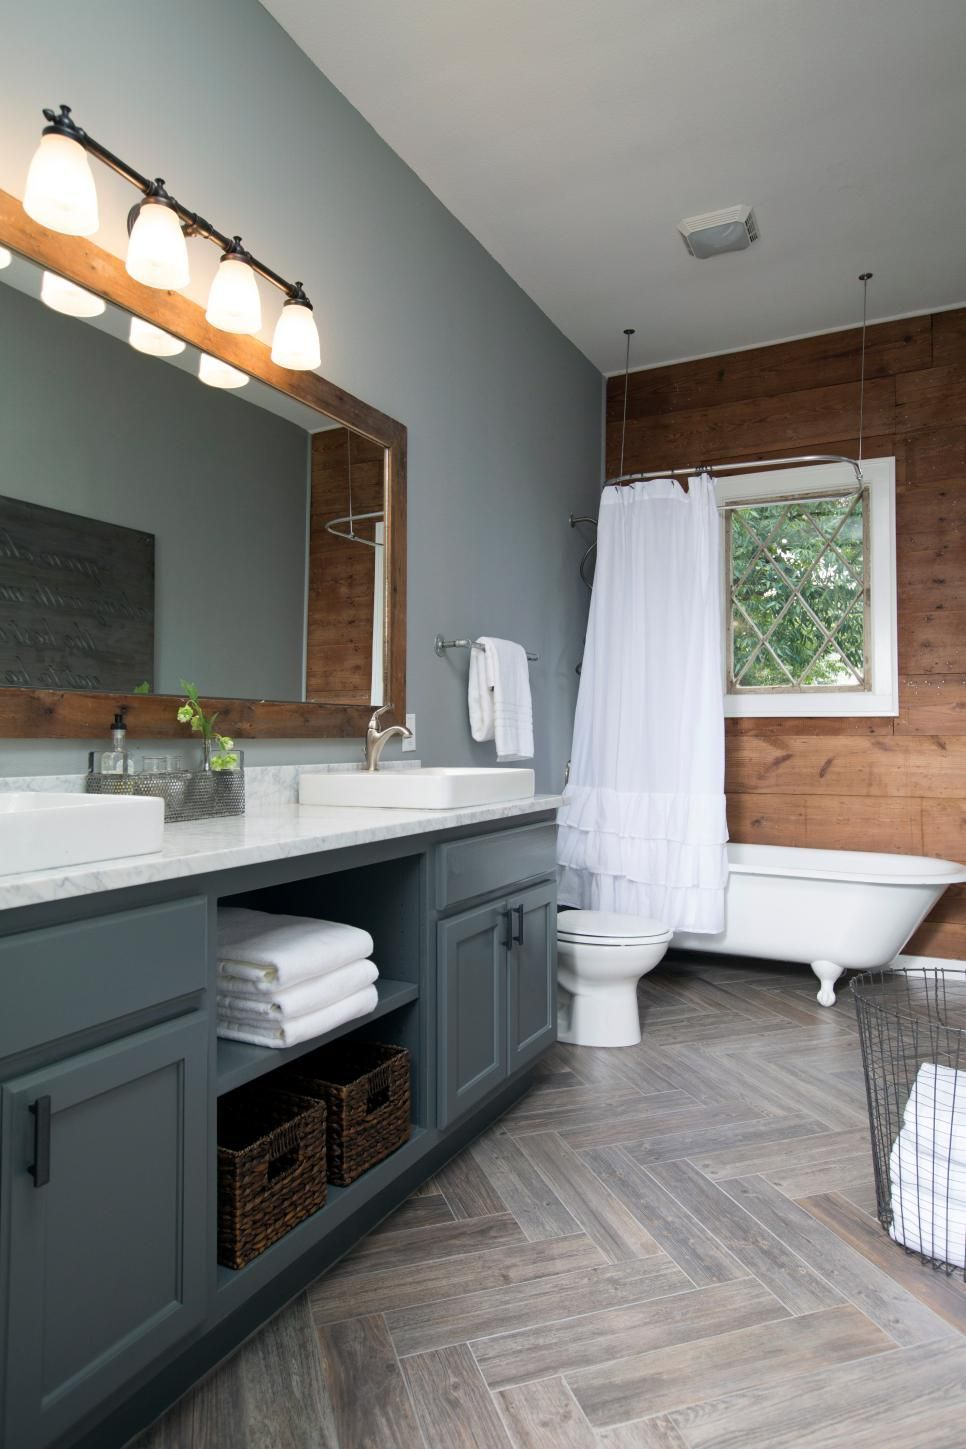 Chip And Joanna Gaines Refinished The Original Clawfoot Tub Used Shiplap To Create An Accent